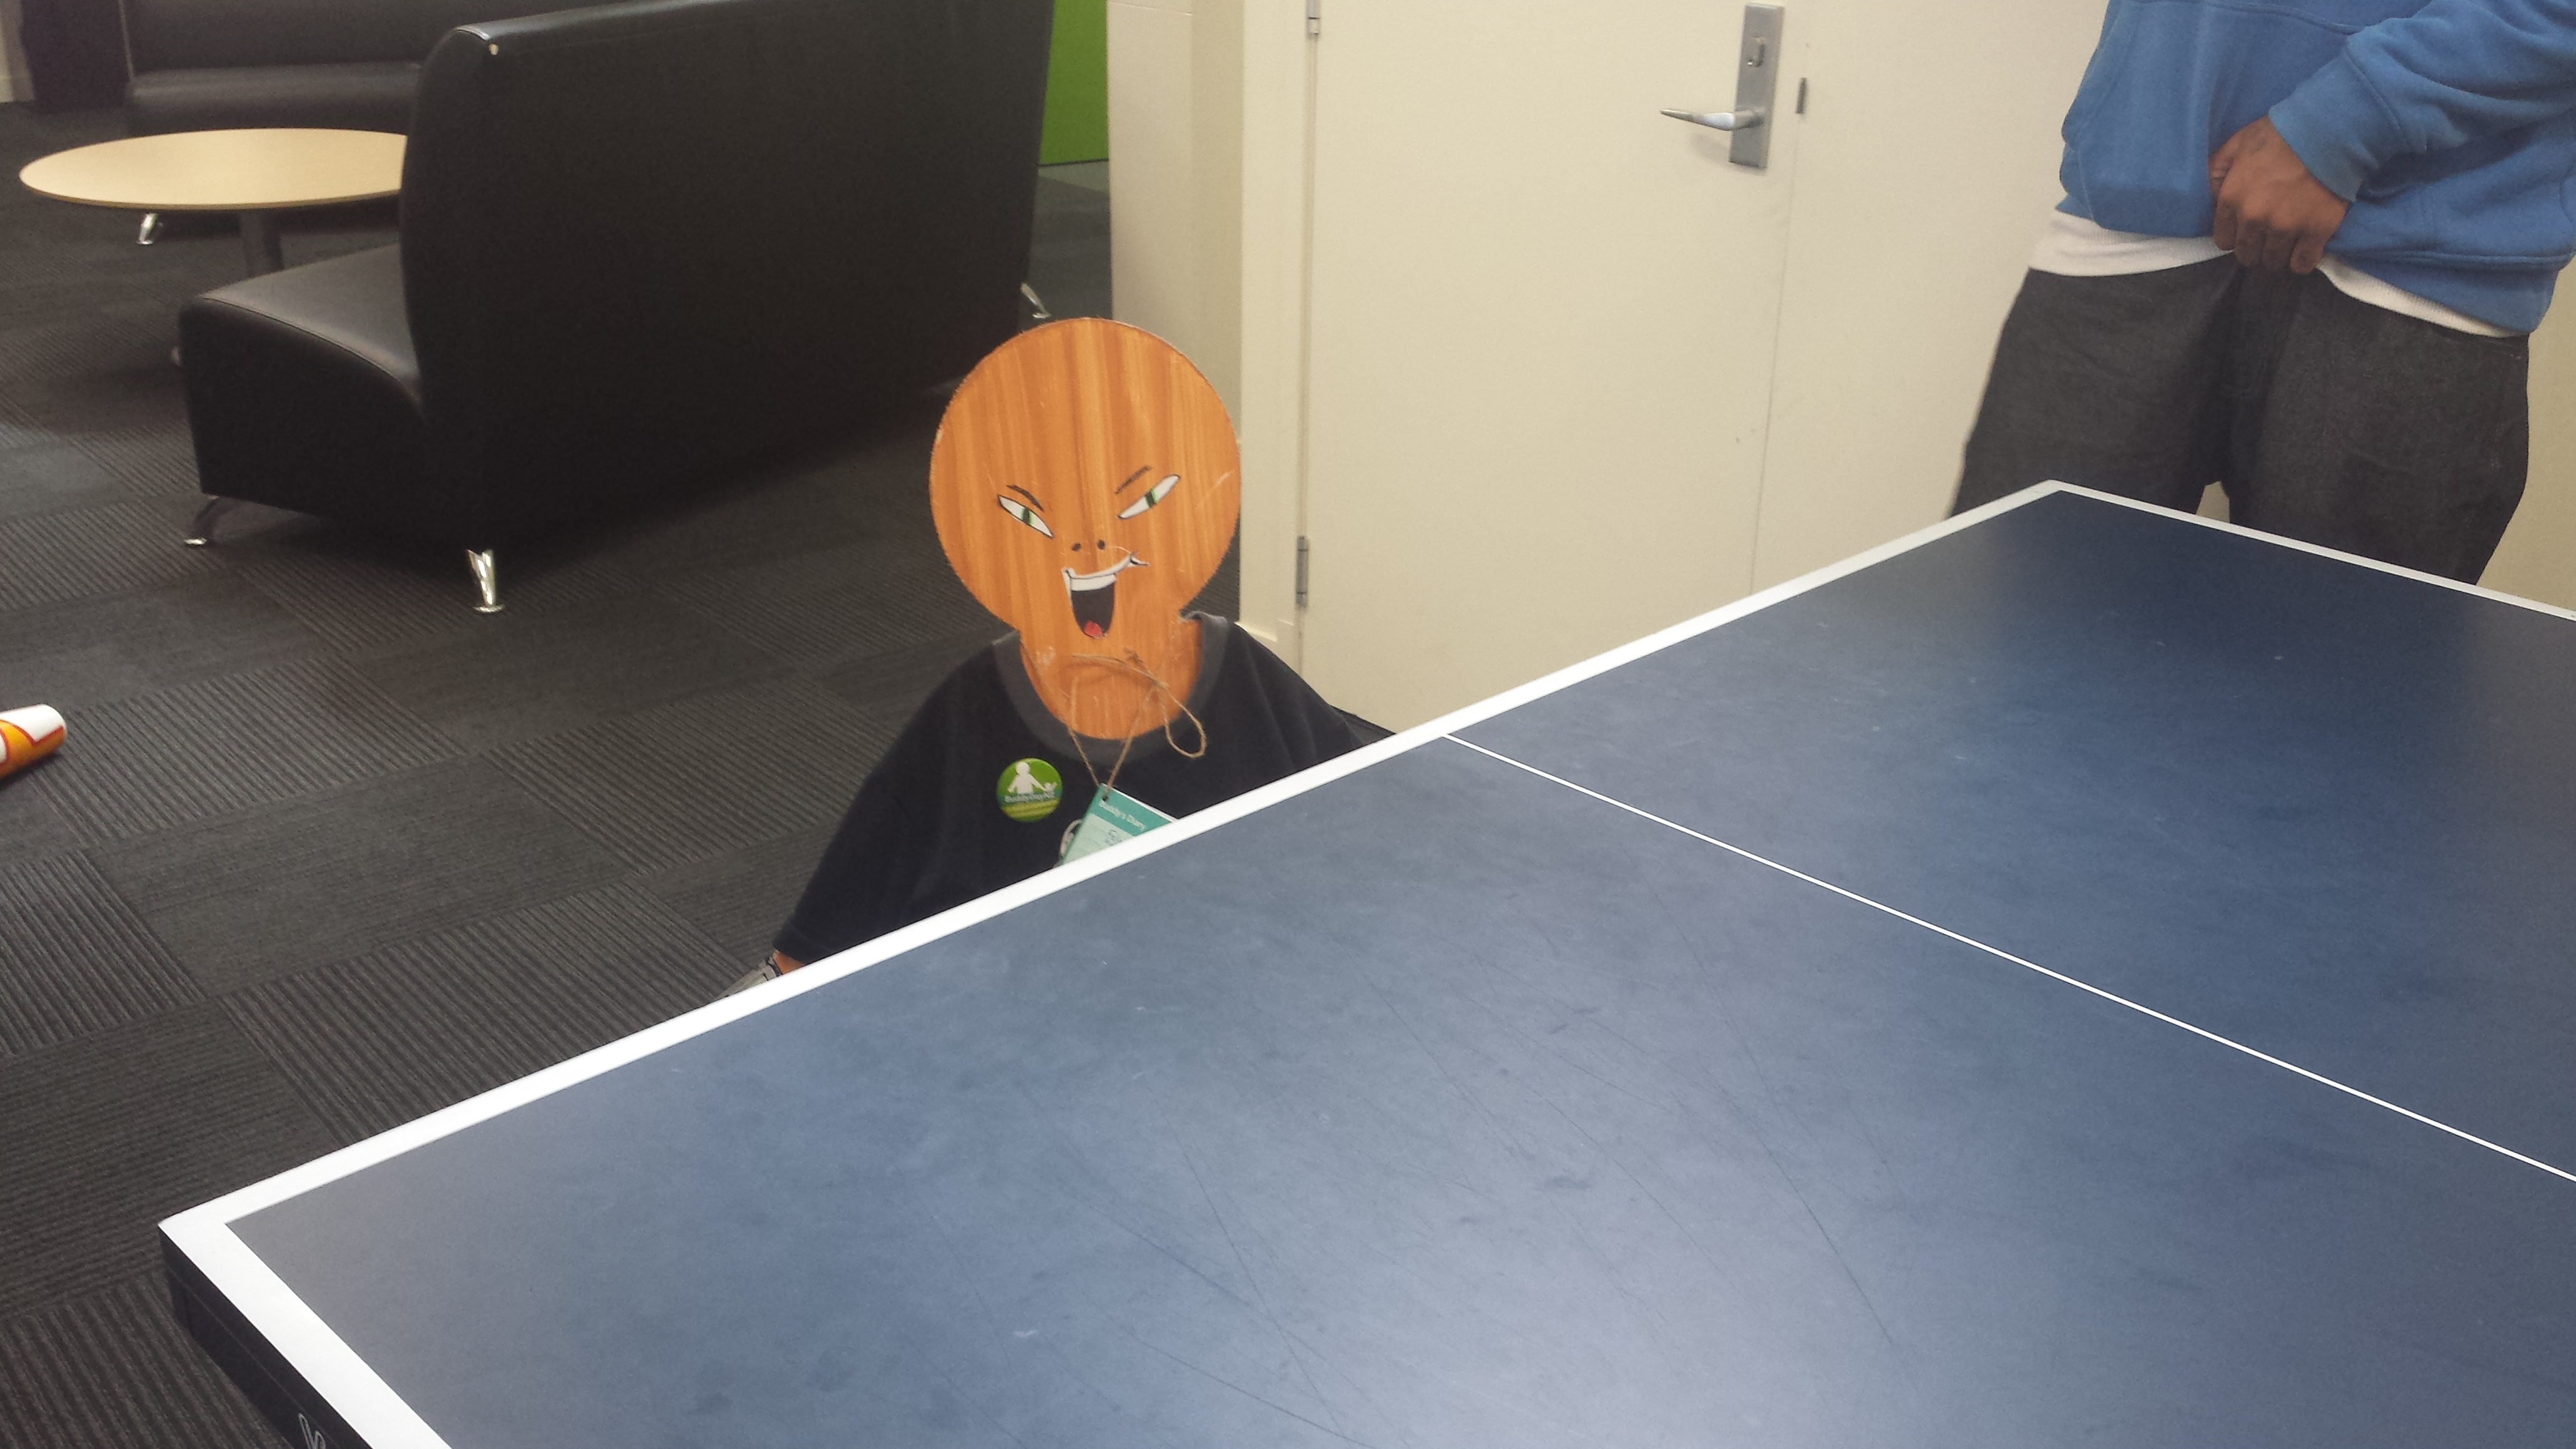 Felix's main interest was Table tennis so good thing we visited Genesis!